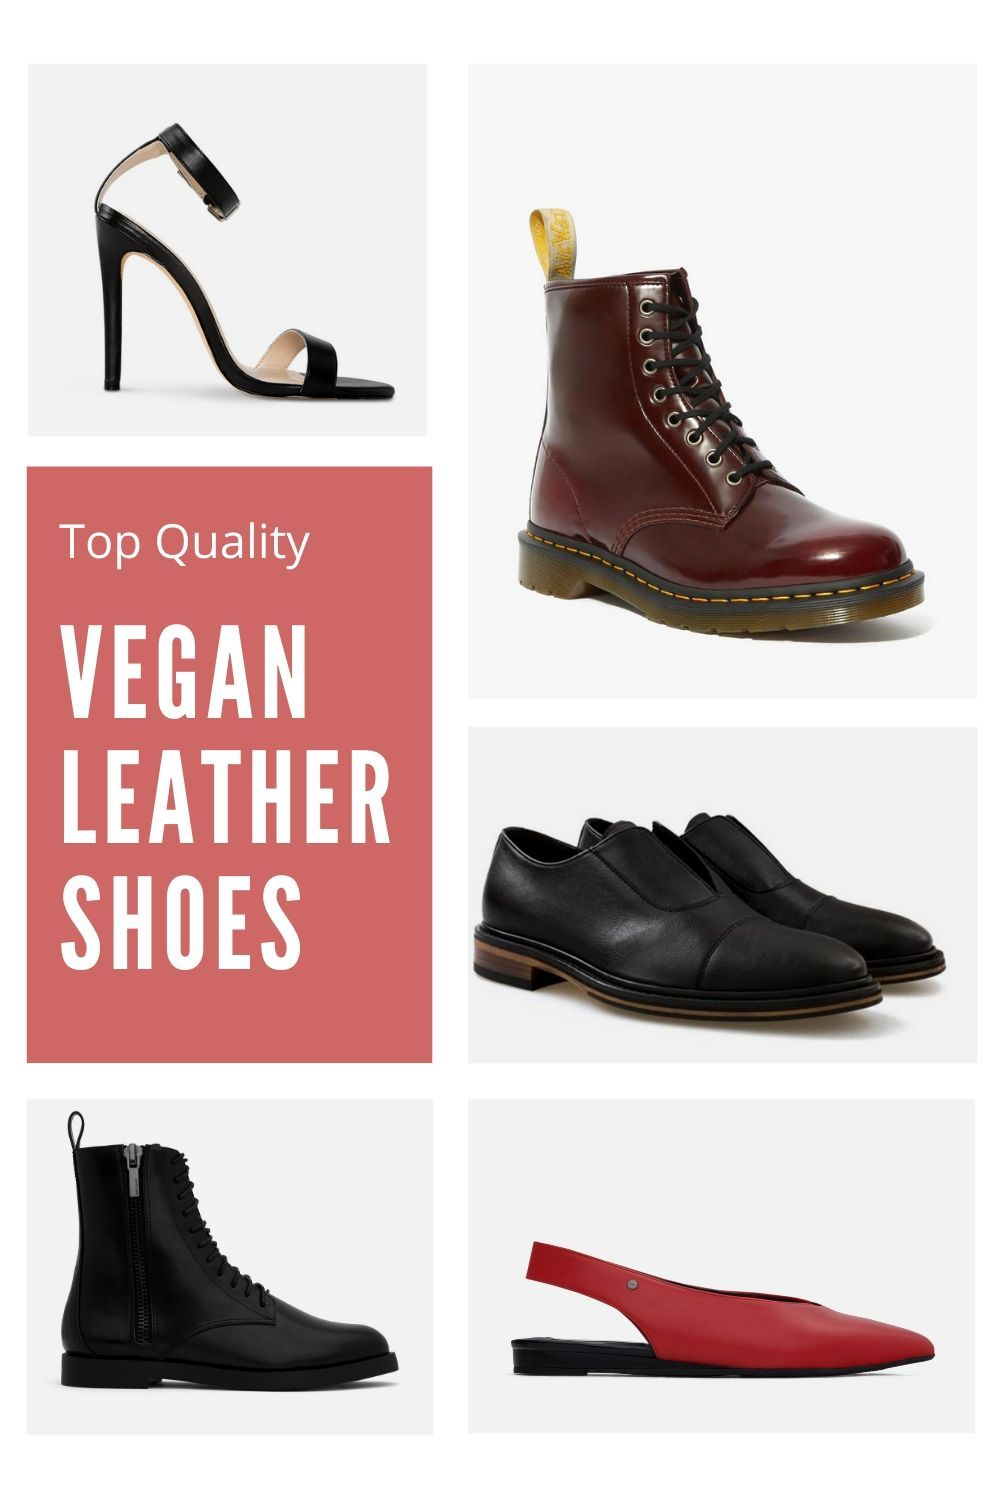 Best Quality Vegan Leather Shoes That Break In Beautifully Vegan Leather Shoes Leather Shoes Vegan Leather